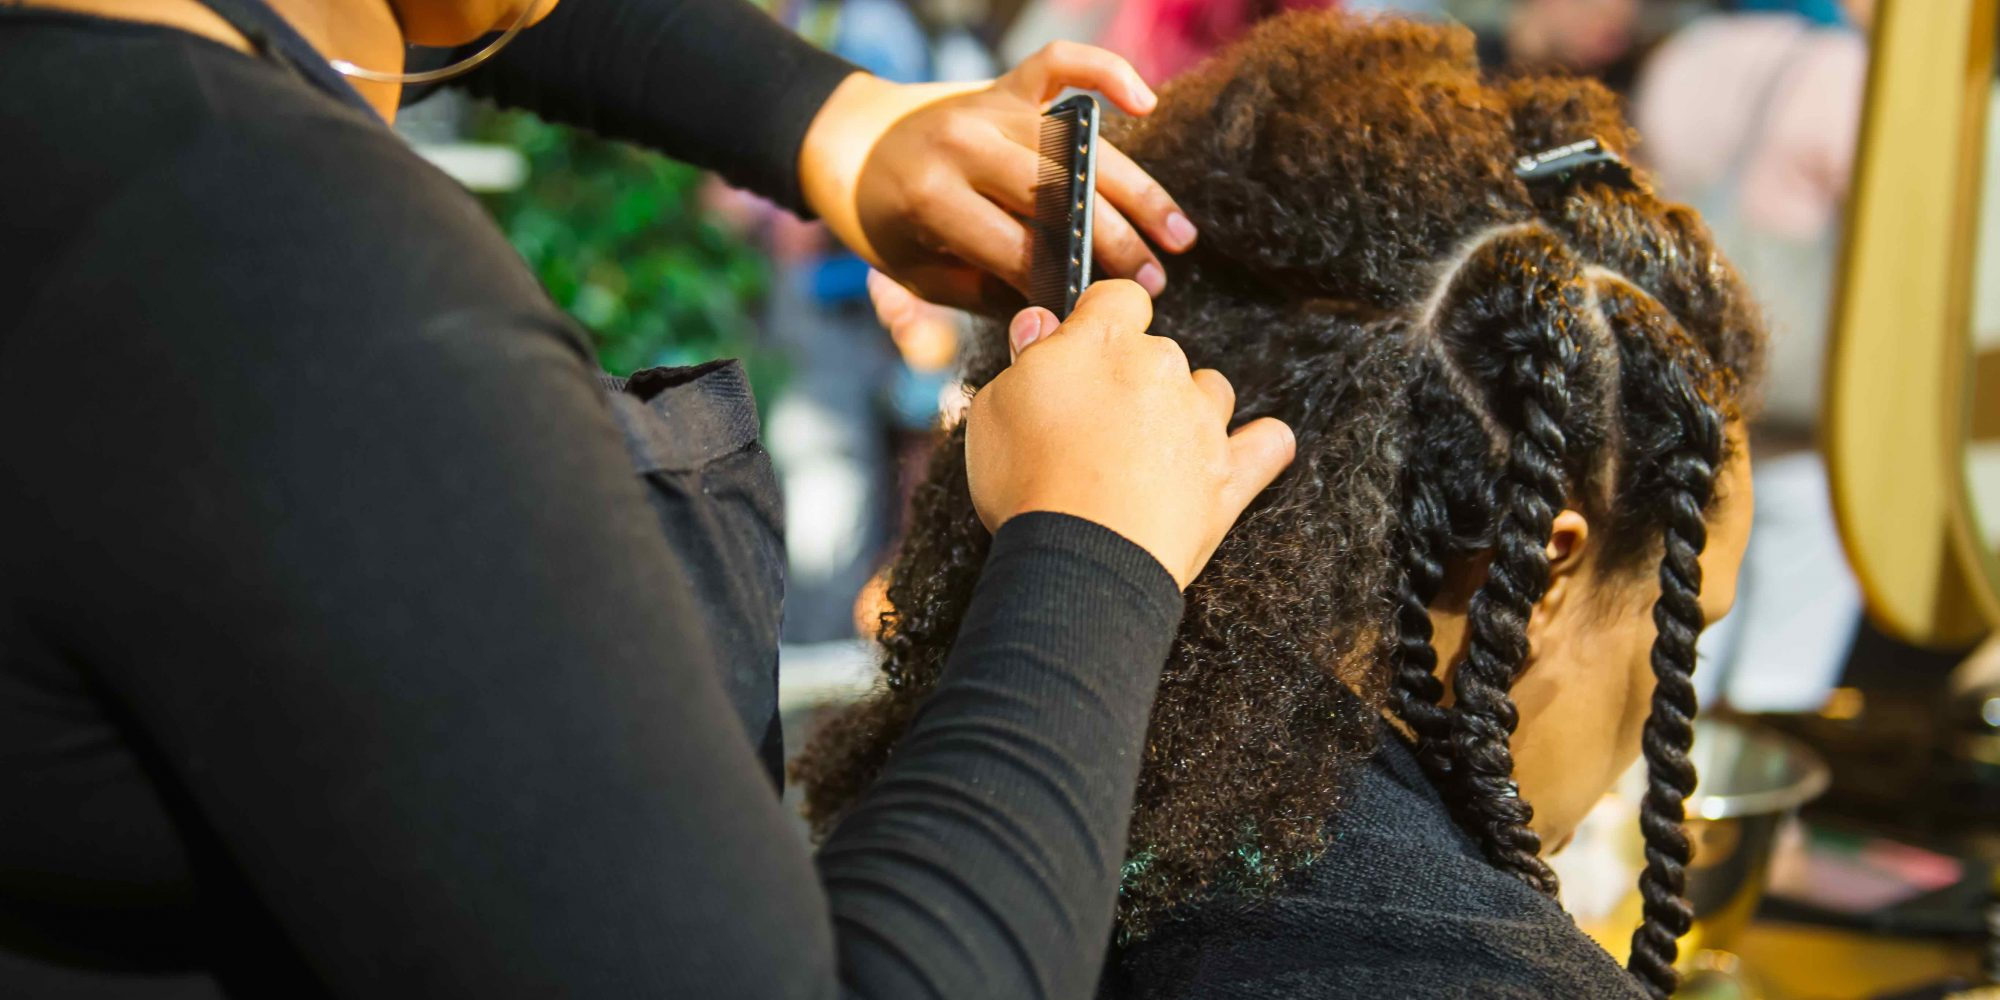 Hair Product Companies Support Salons Impacted By The Coronavirus Crisis